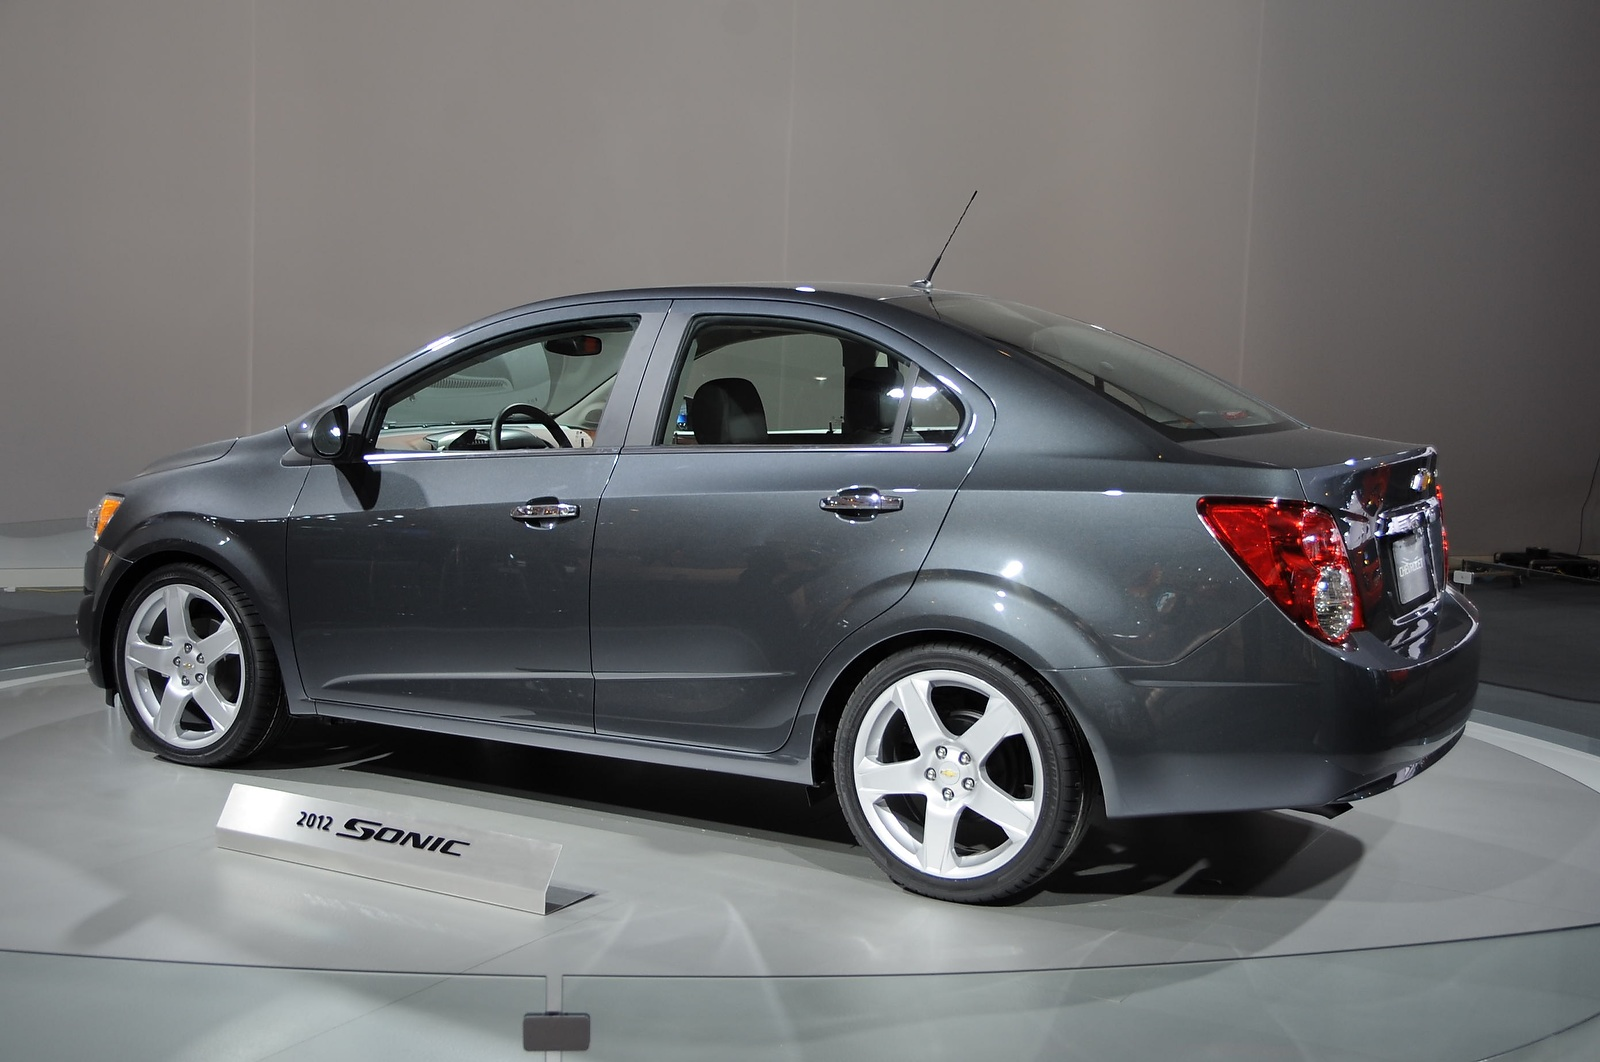 All Chevy 2012 chevy cars : New Small Cars: 2012 Chevy Sonic, Nissan Versa, Hyundai Accent ...